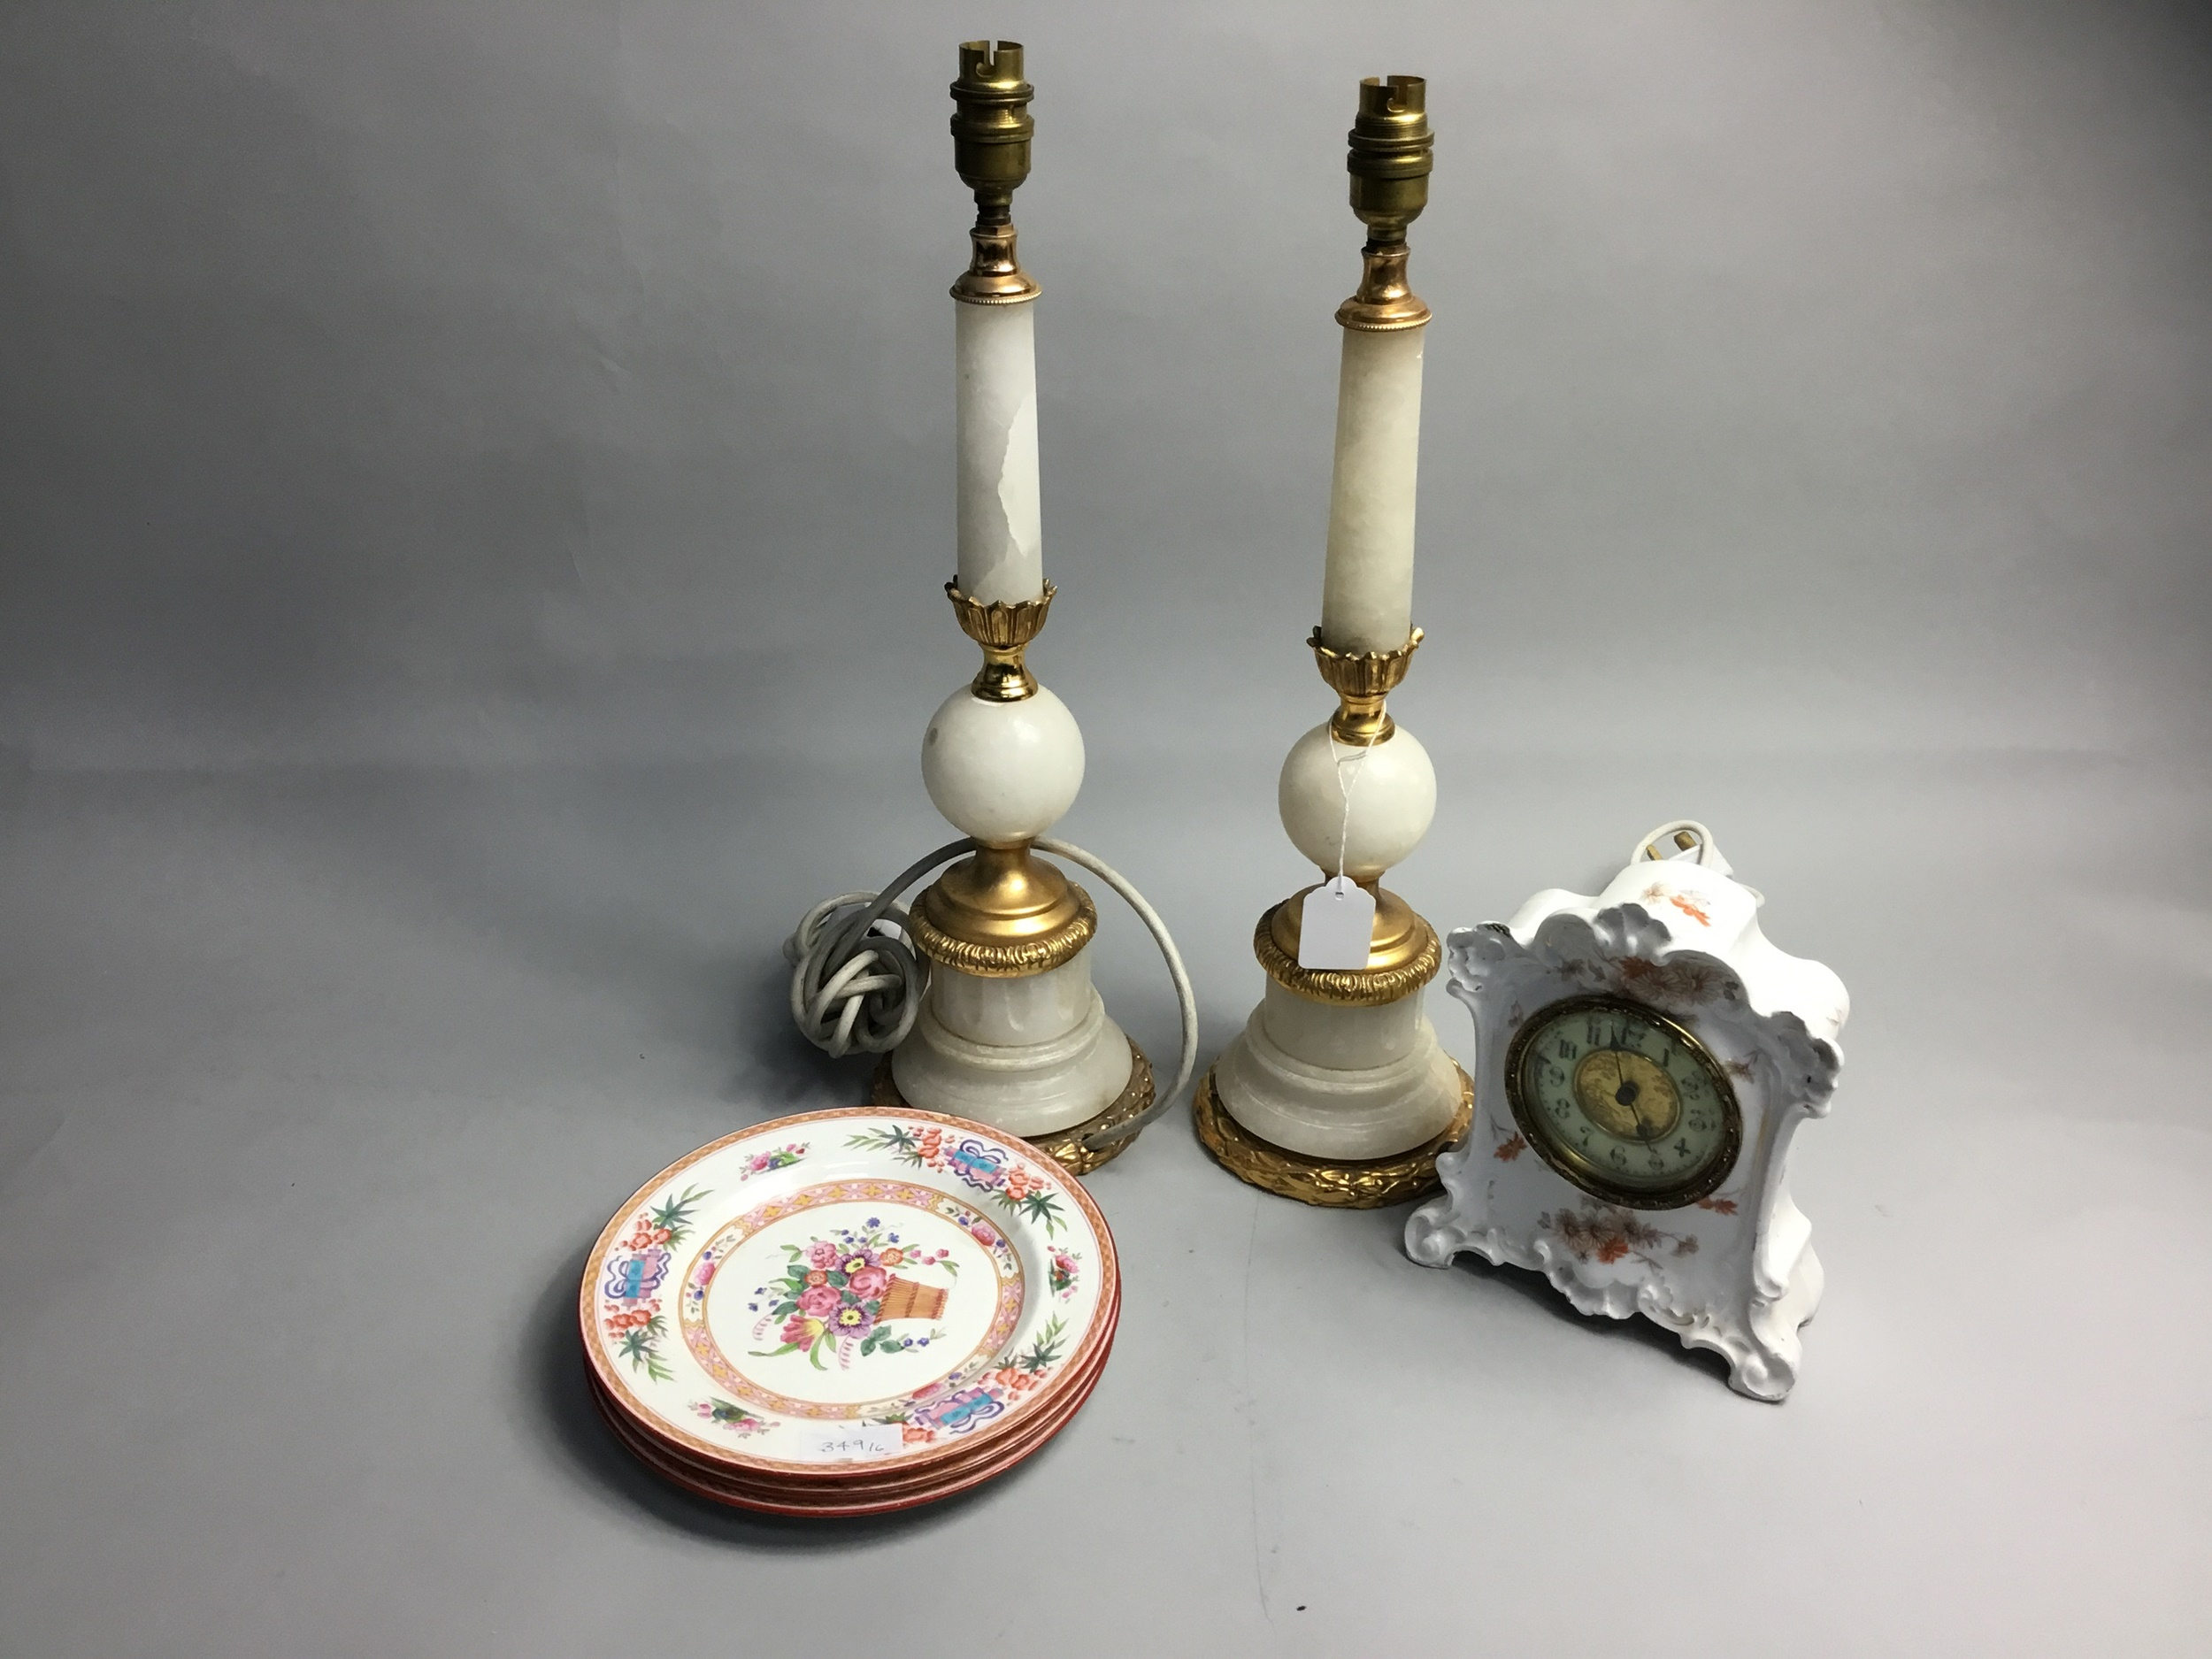 A PAIR OF ONYX AND BRASS TABLE LAMPS, CERAMICS CLOCK AND PLATES